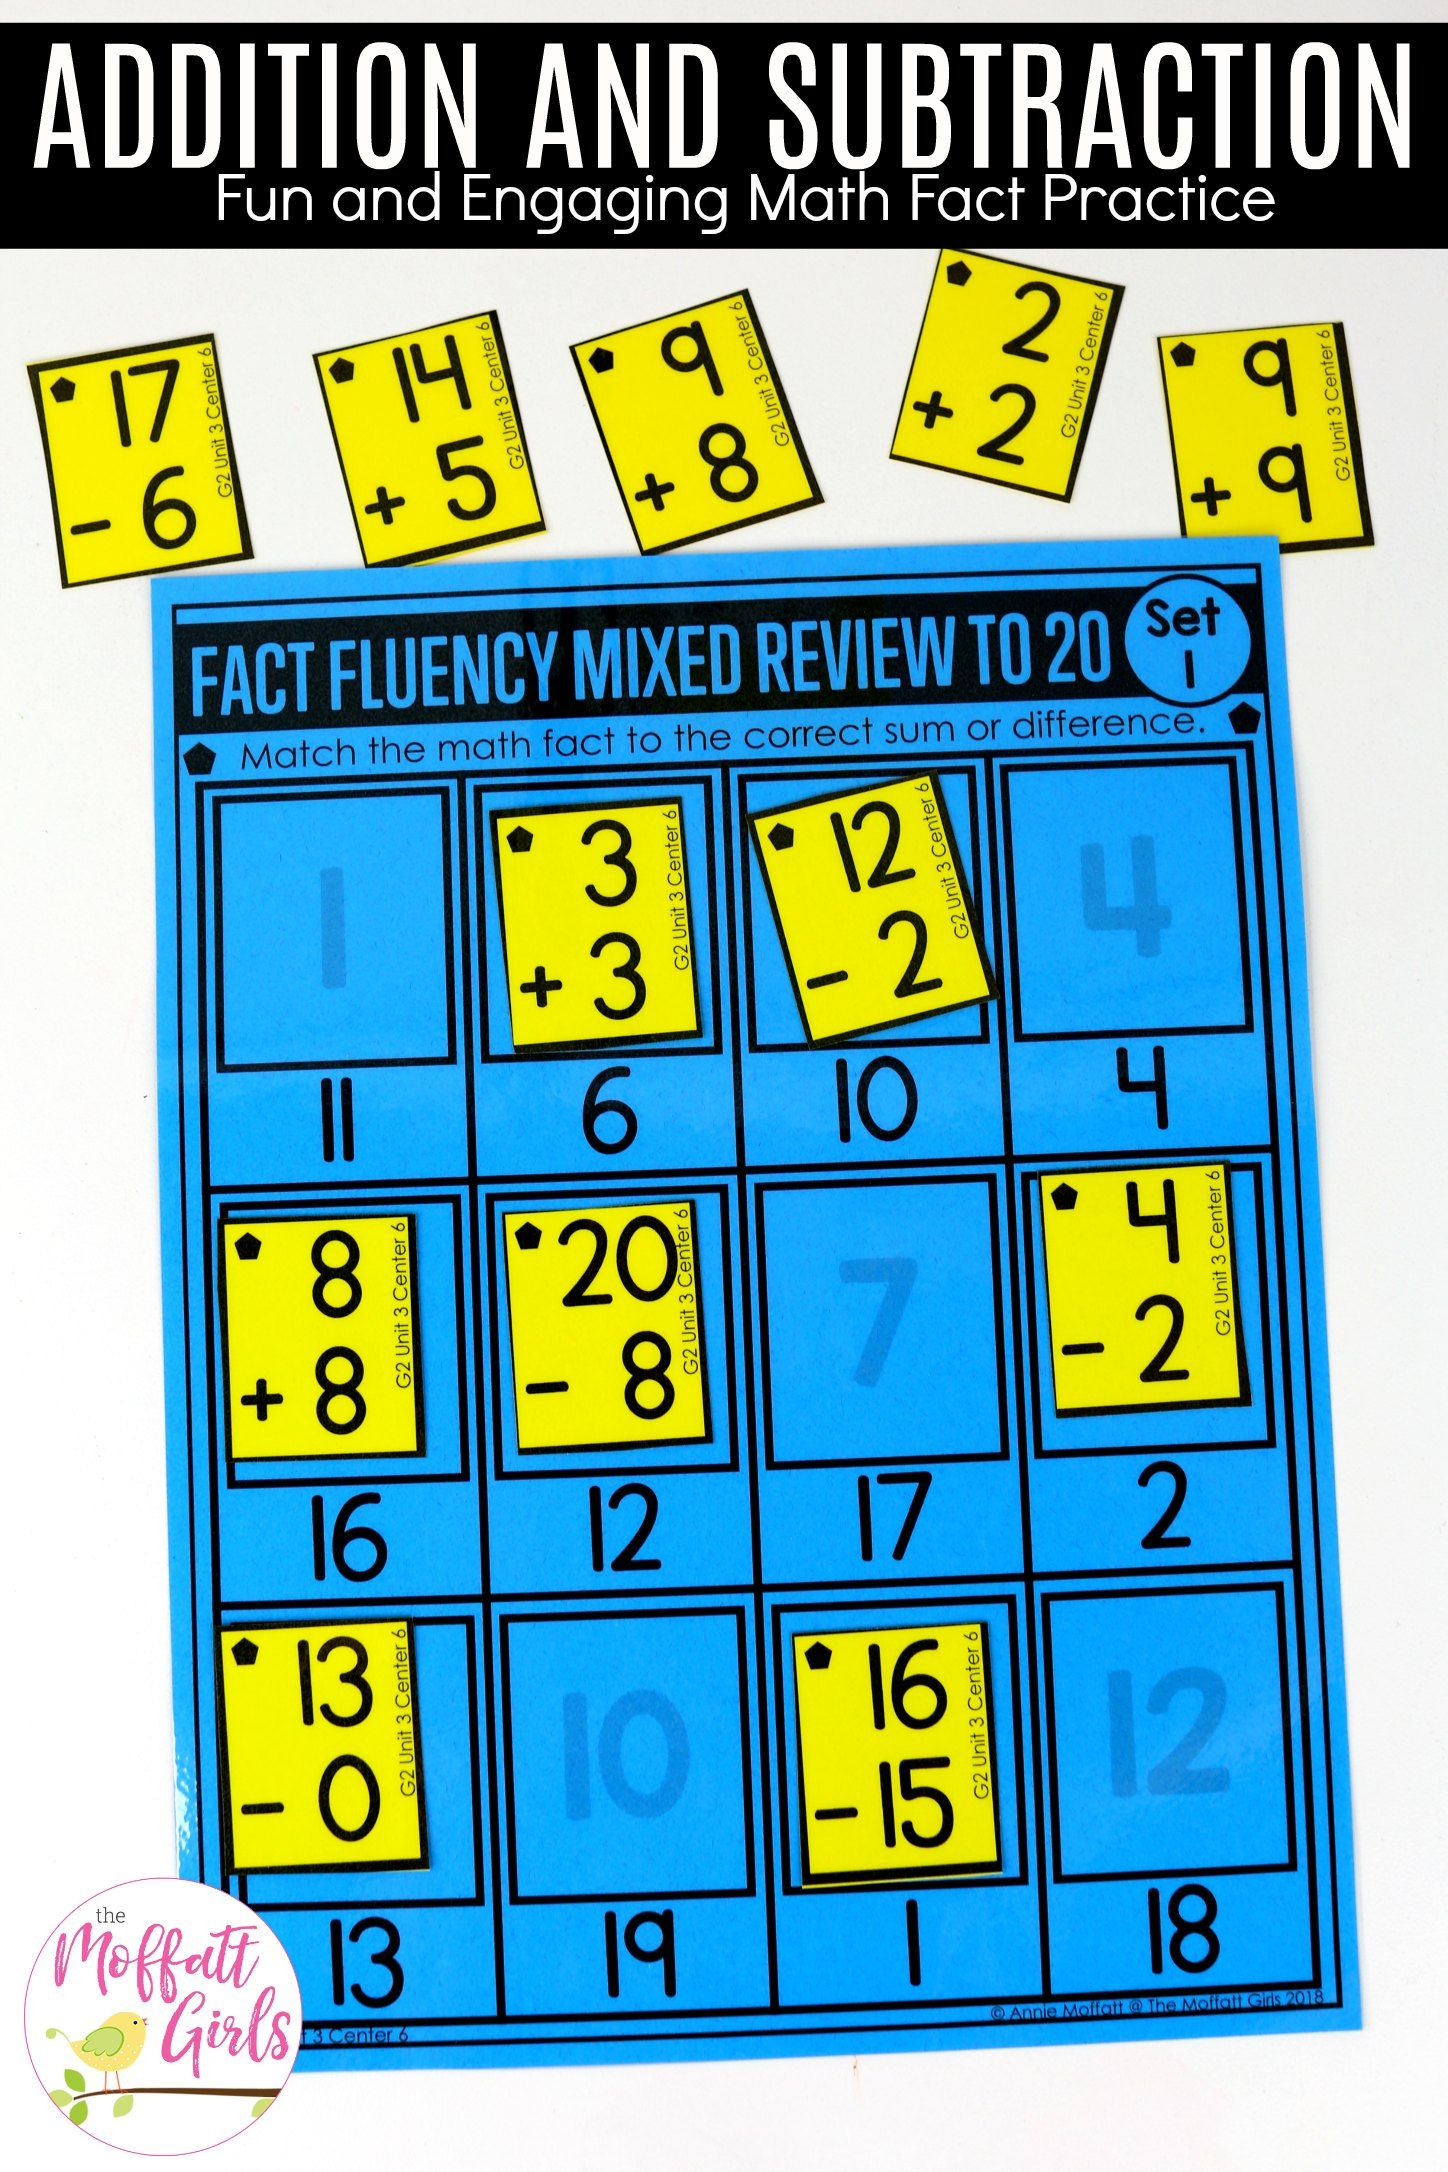 Addition And Subtraction Fluency Up To 100 For 2nd Grade Addition And Subtraction Math Fact Practice Subtraction Math addition and subtraction fluency